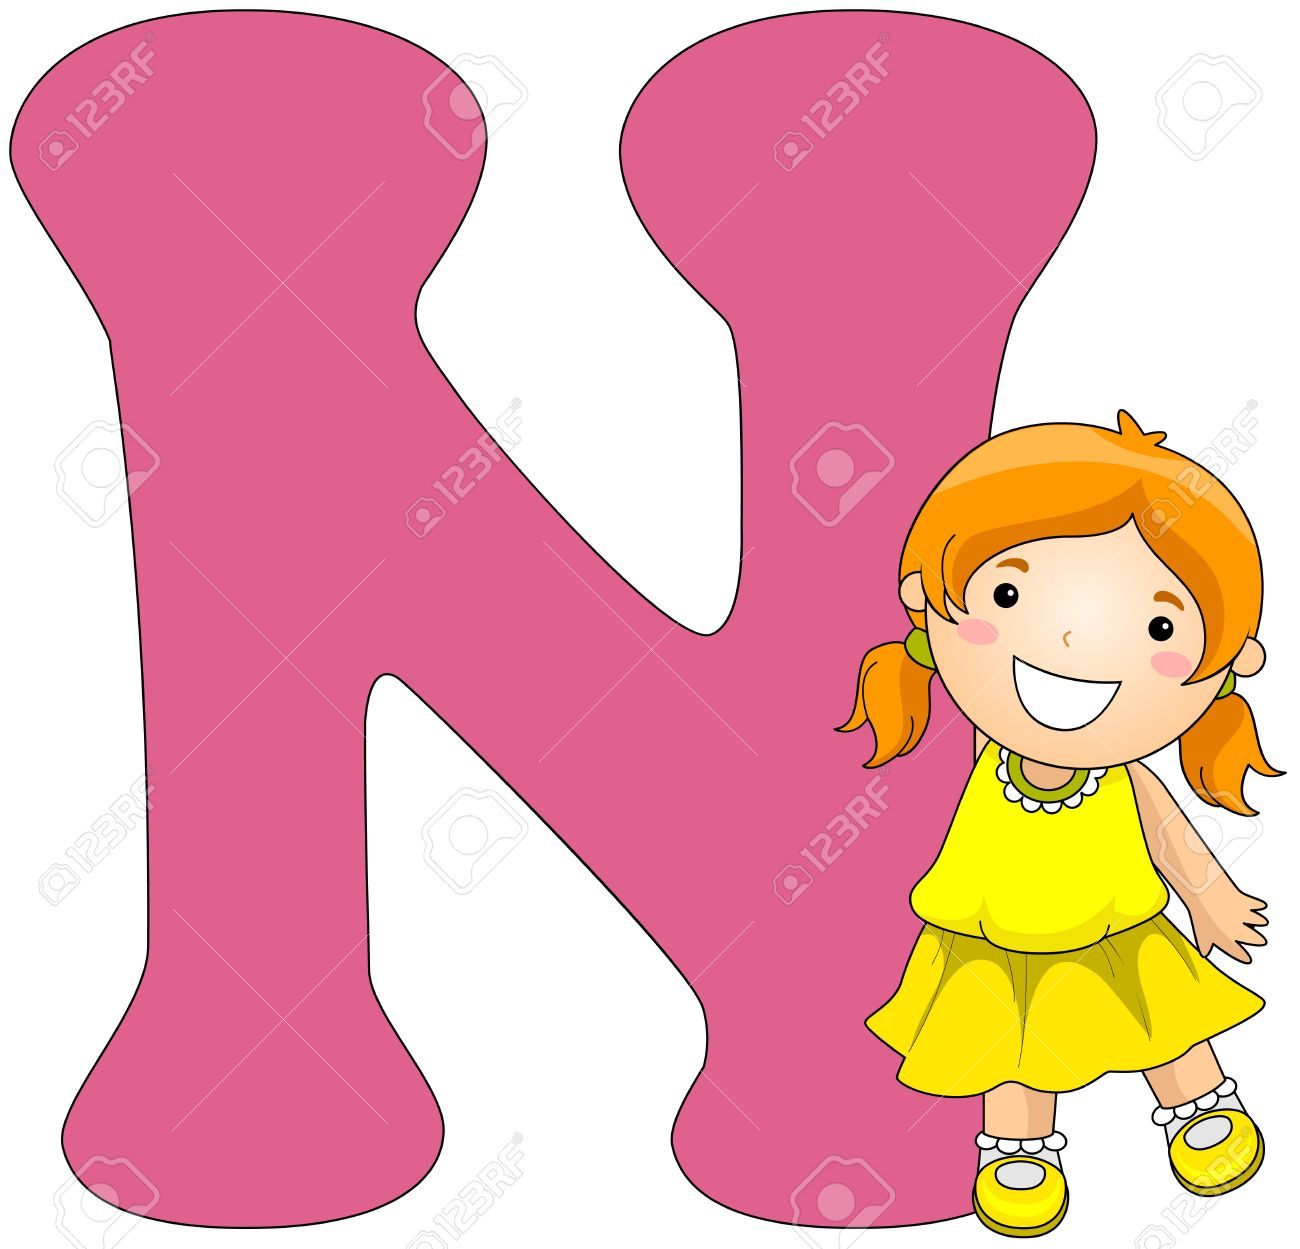 small resolution of hight resolution of illustration illustration of a girl posing beside a letter n